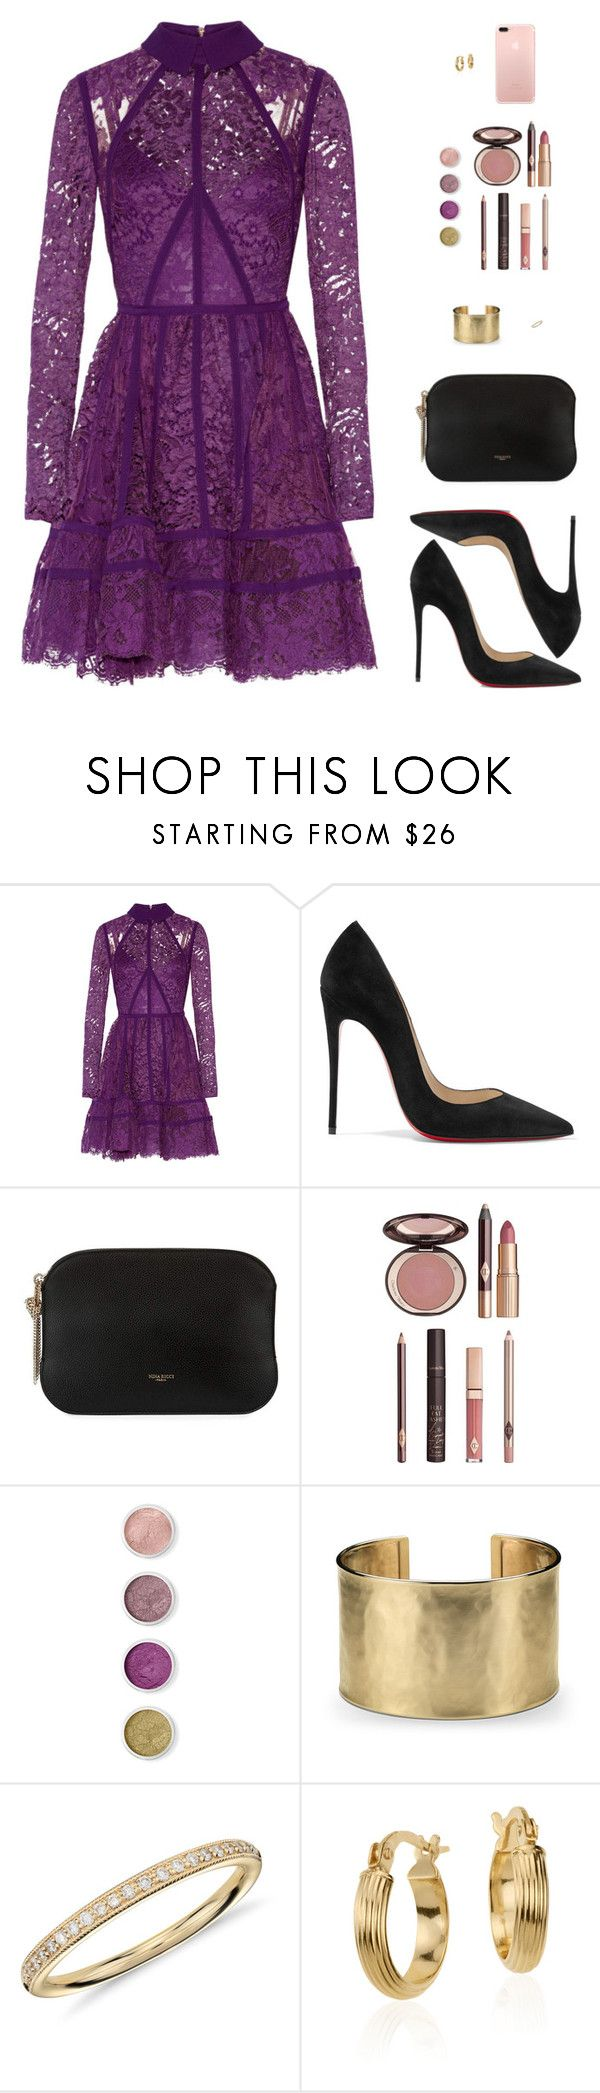 """""""Sin título #4467"""" by mdmsb ❤ liked on Polyvore featuring Elie Saab, Christian Louboutin, Nina Ricci, Charlotte Tilbury, Terre Mère and Blue Nile"""